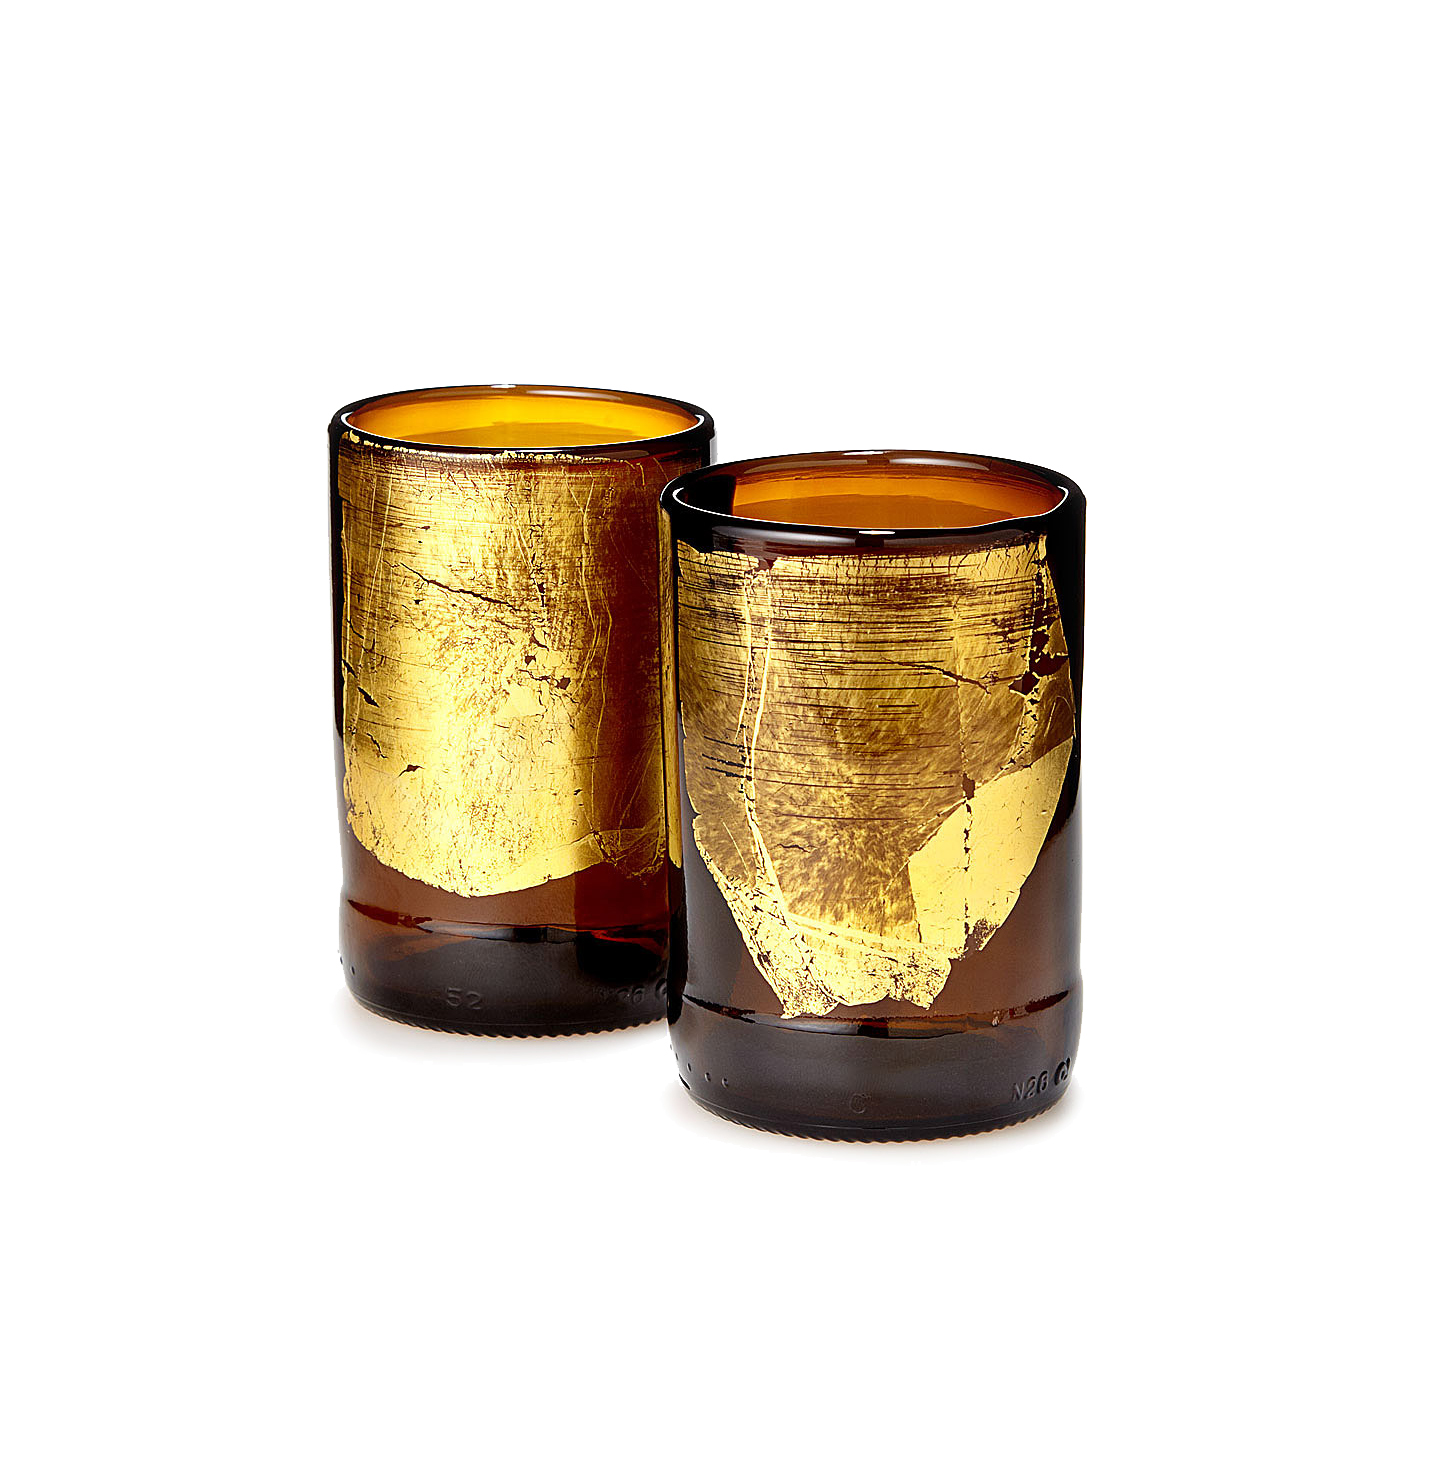 Gold Leaf Upcycled Beer Bottle Glasses